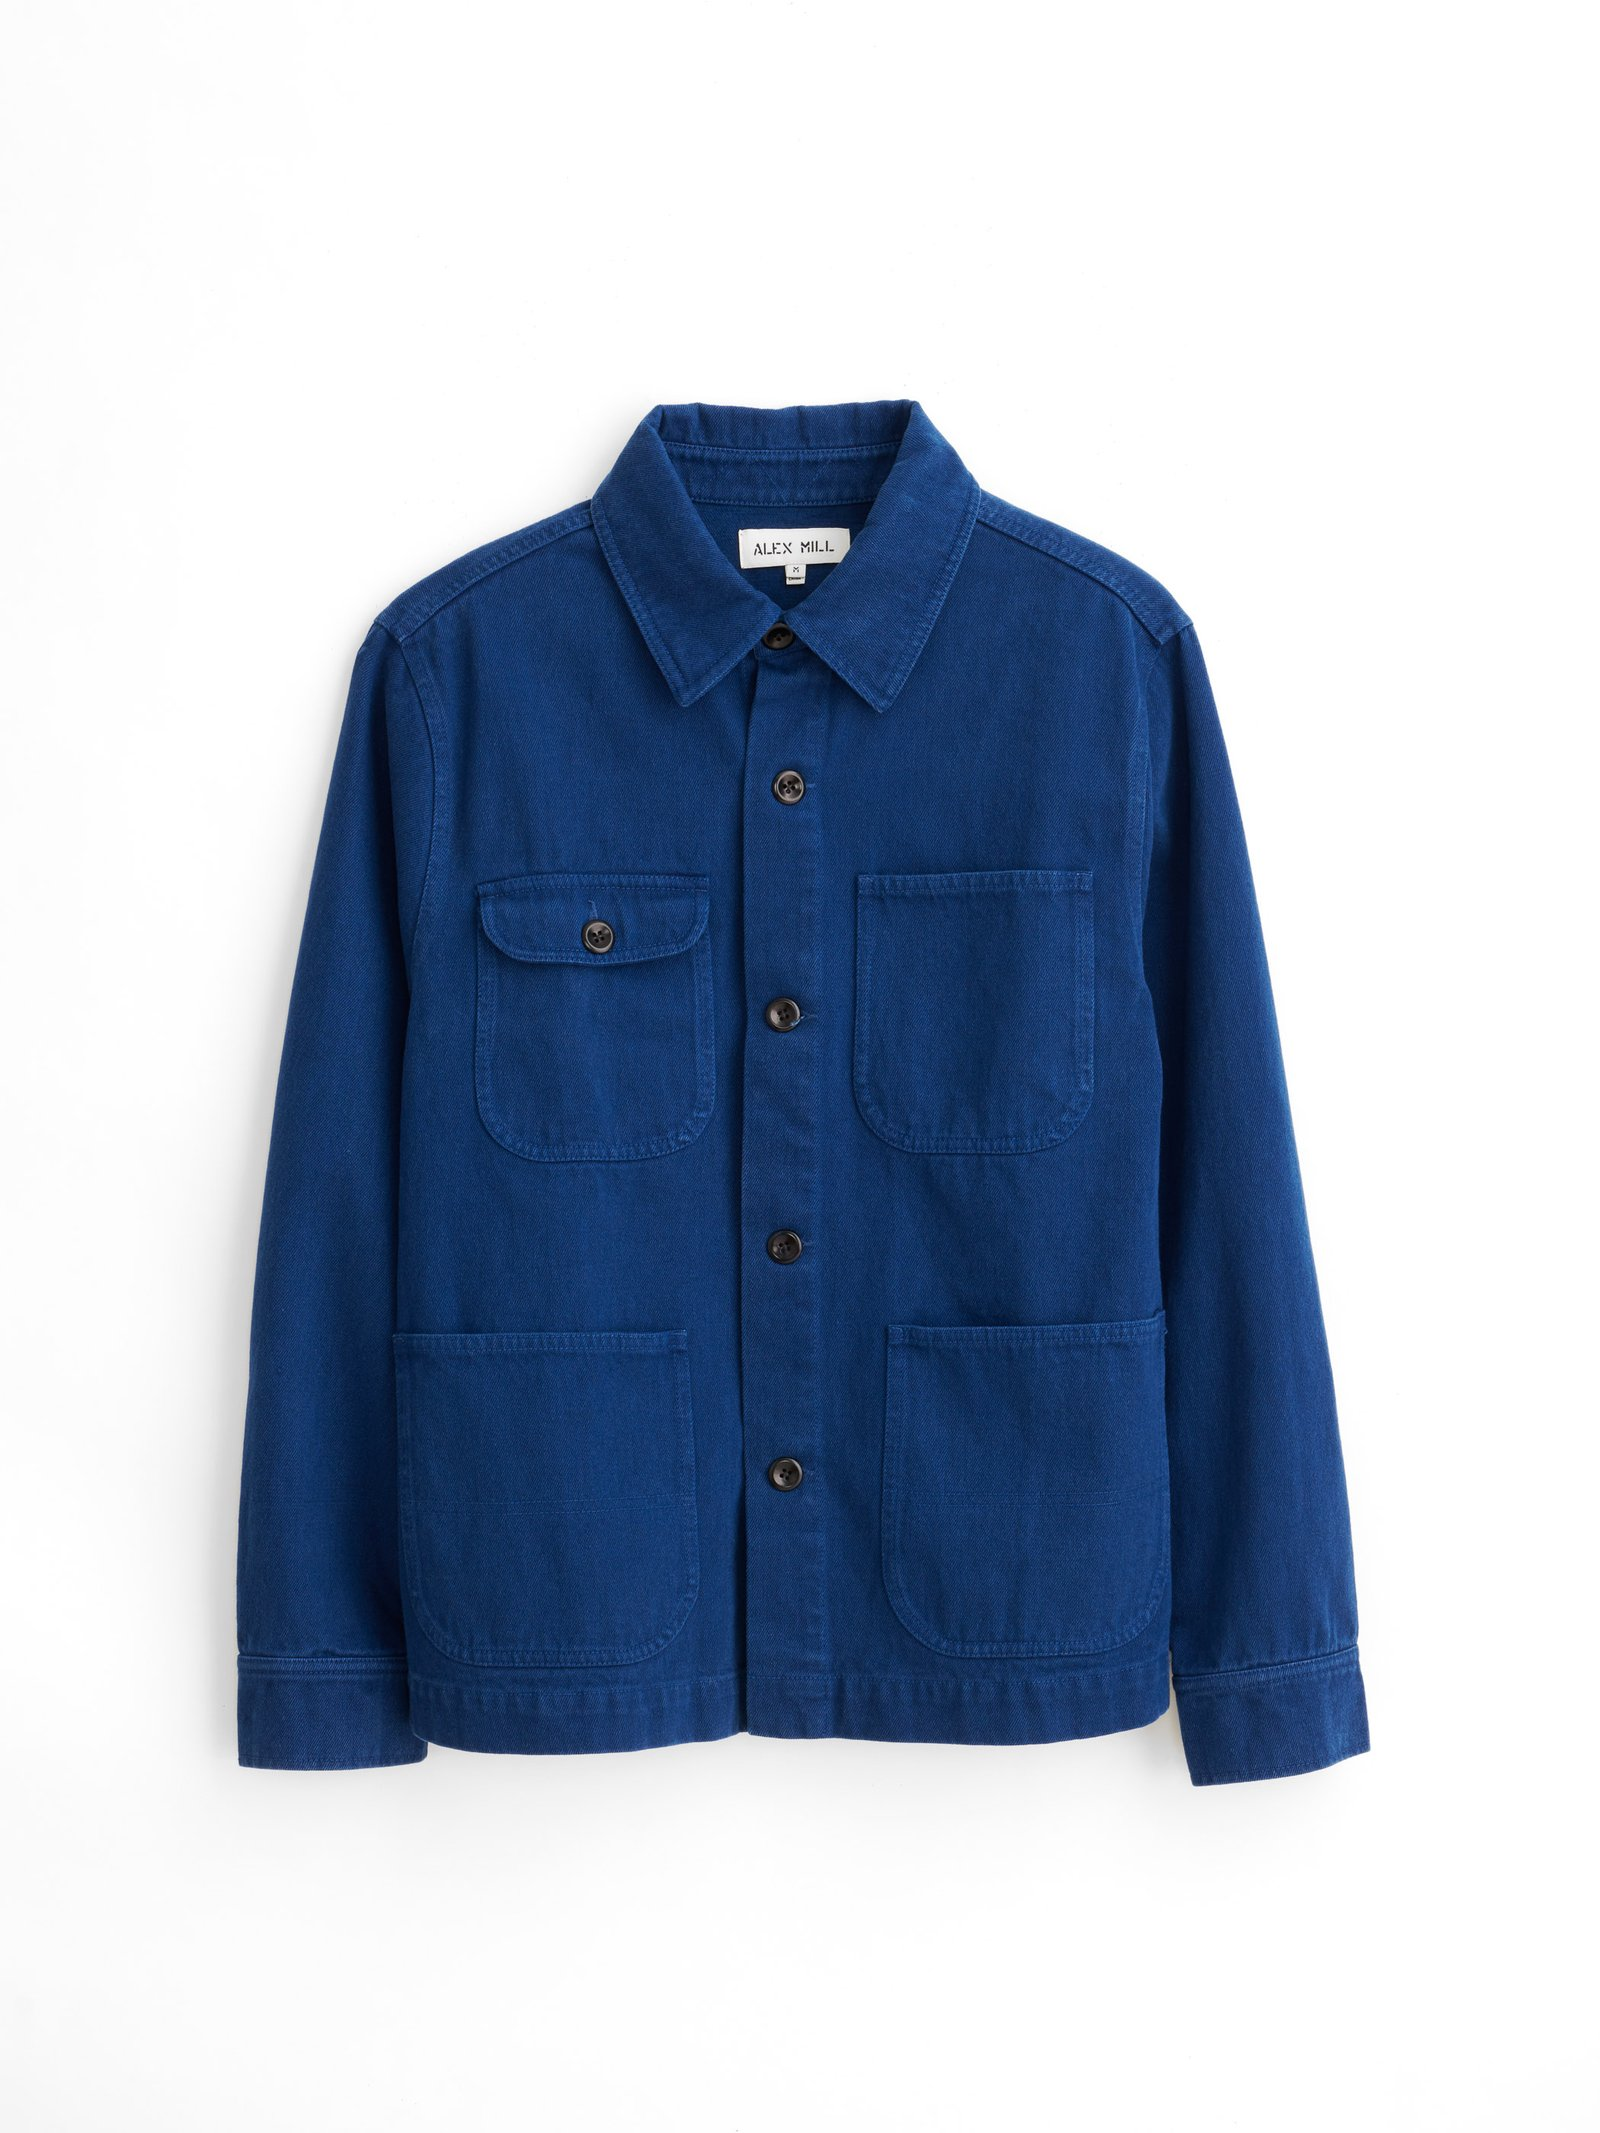 Alex Mill Garment-Dyed Work Jacket in Upcycled Cotton